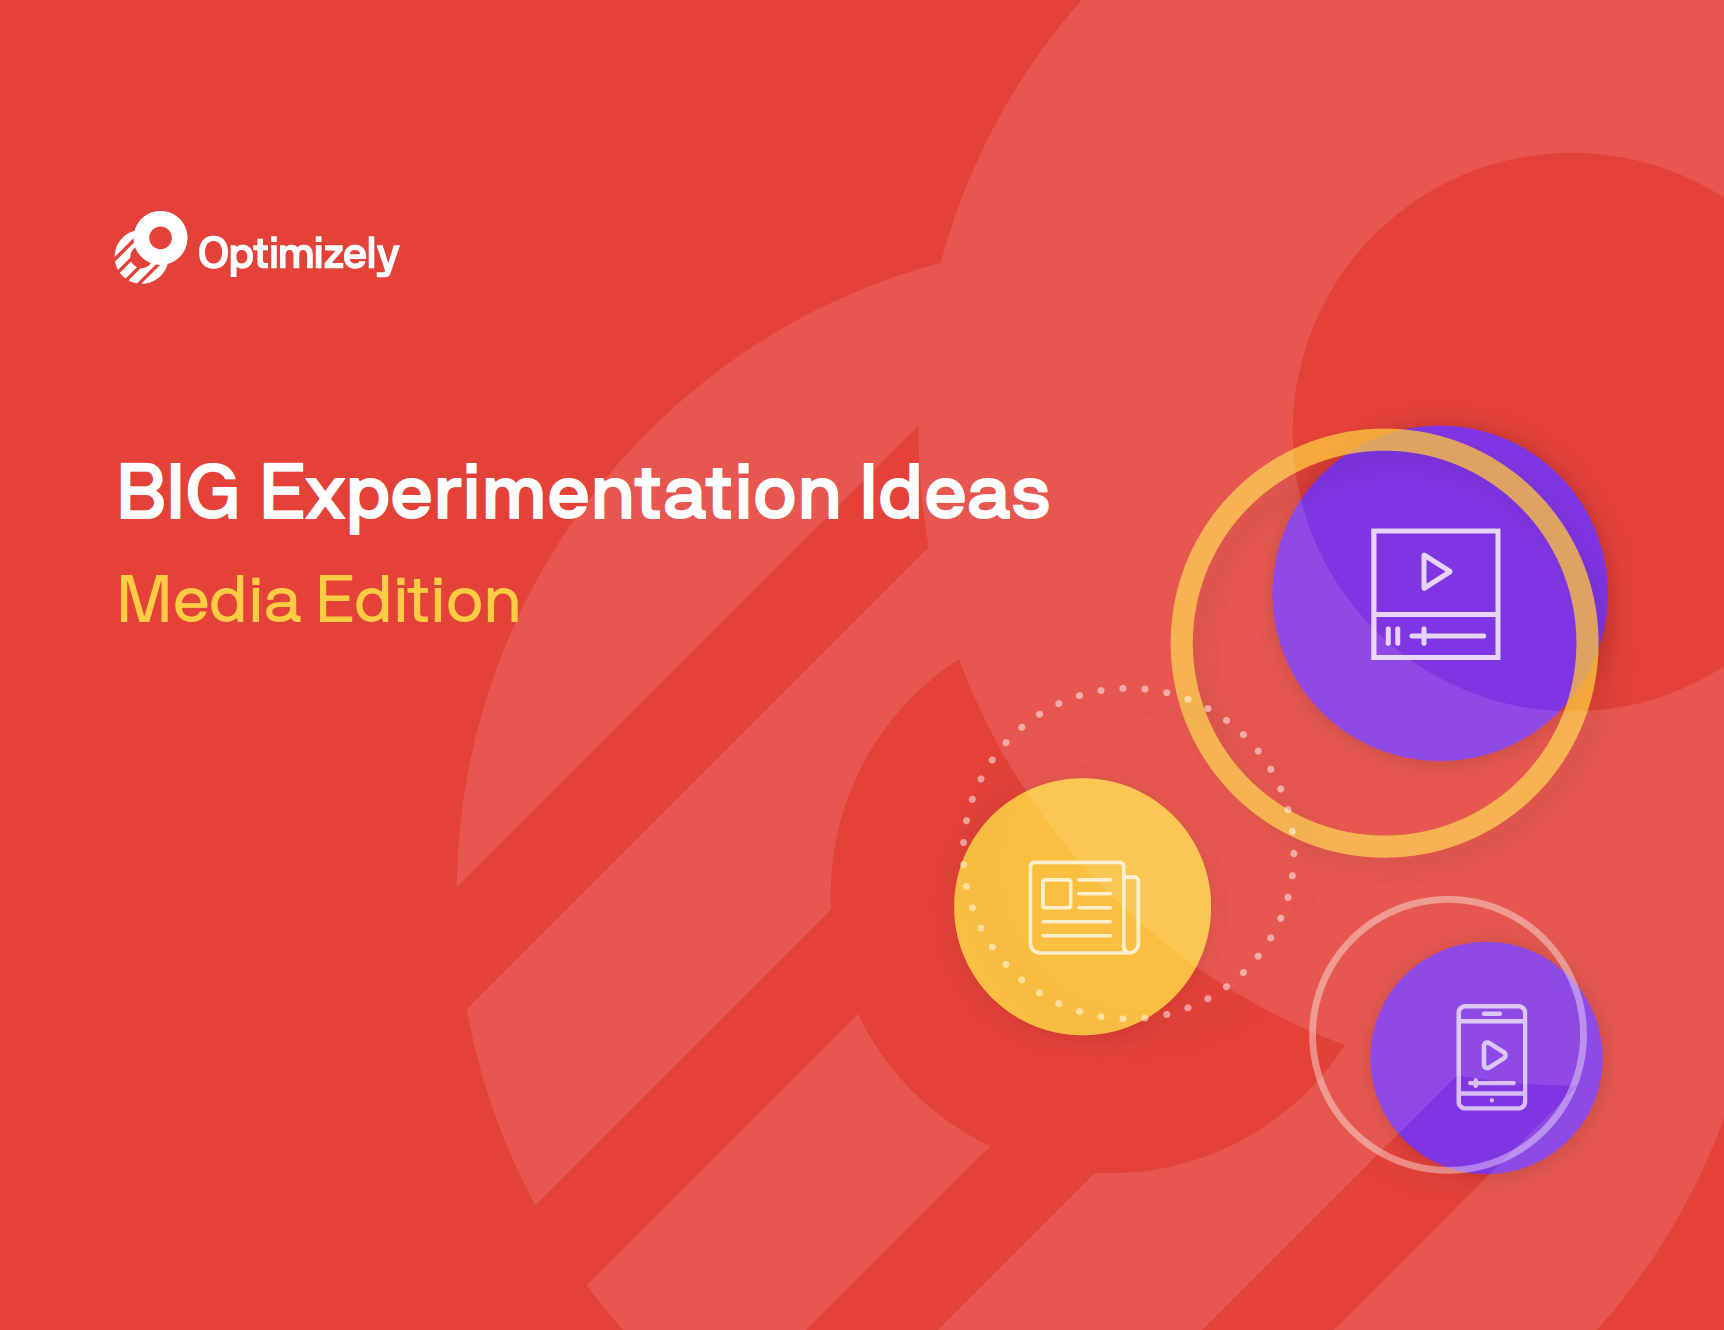 Big Experimentation Ideas: Media Edition